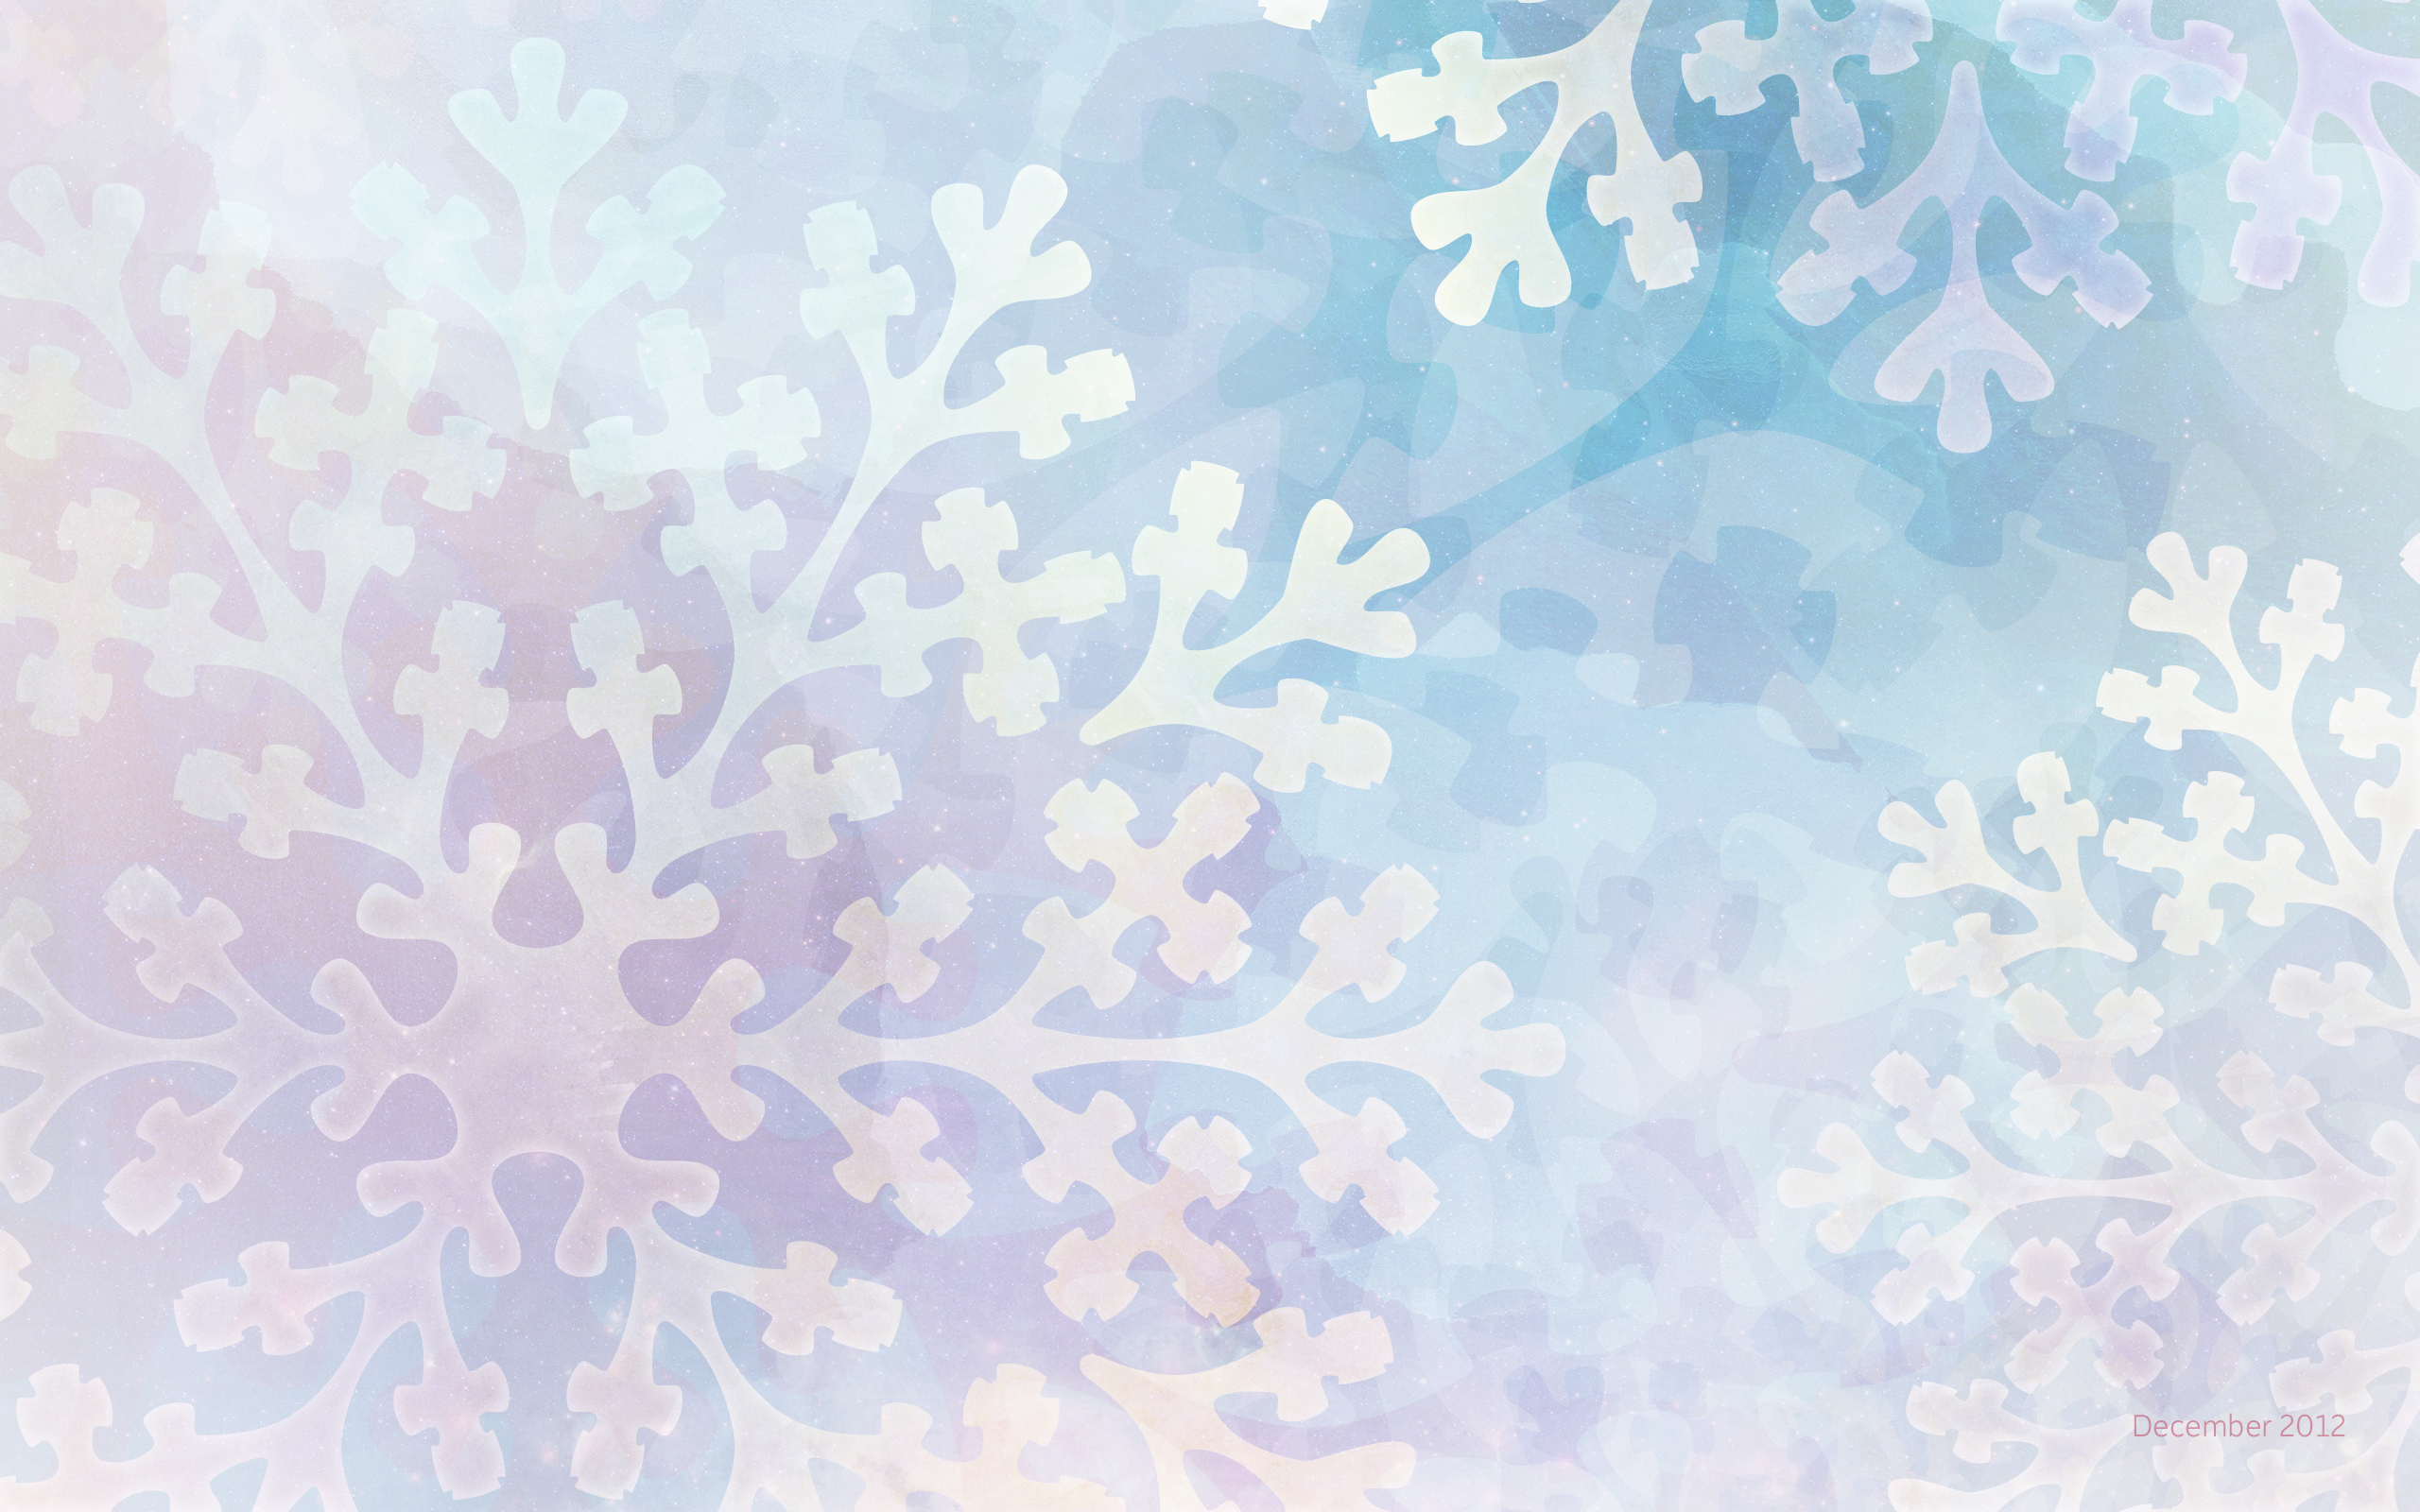 december wallpaper by endosage on deviantart